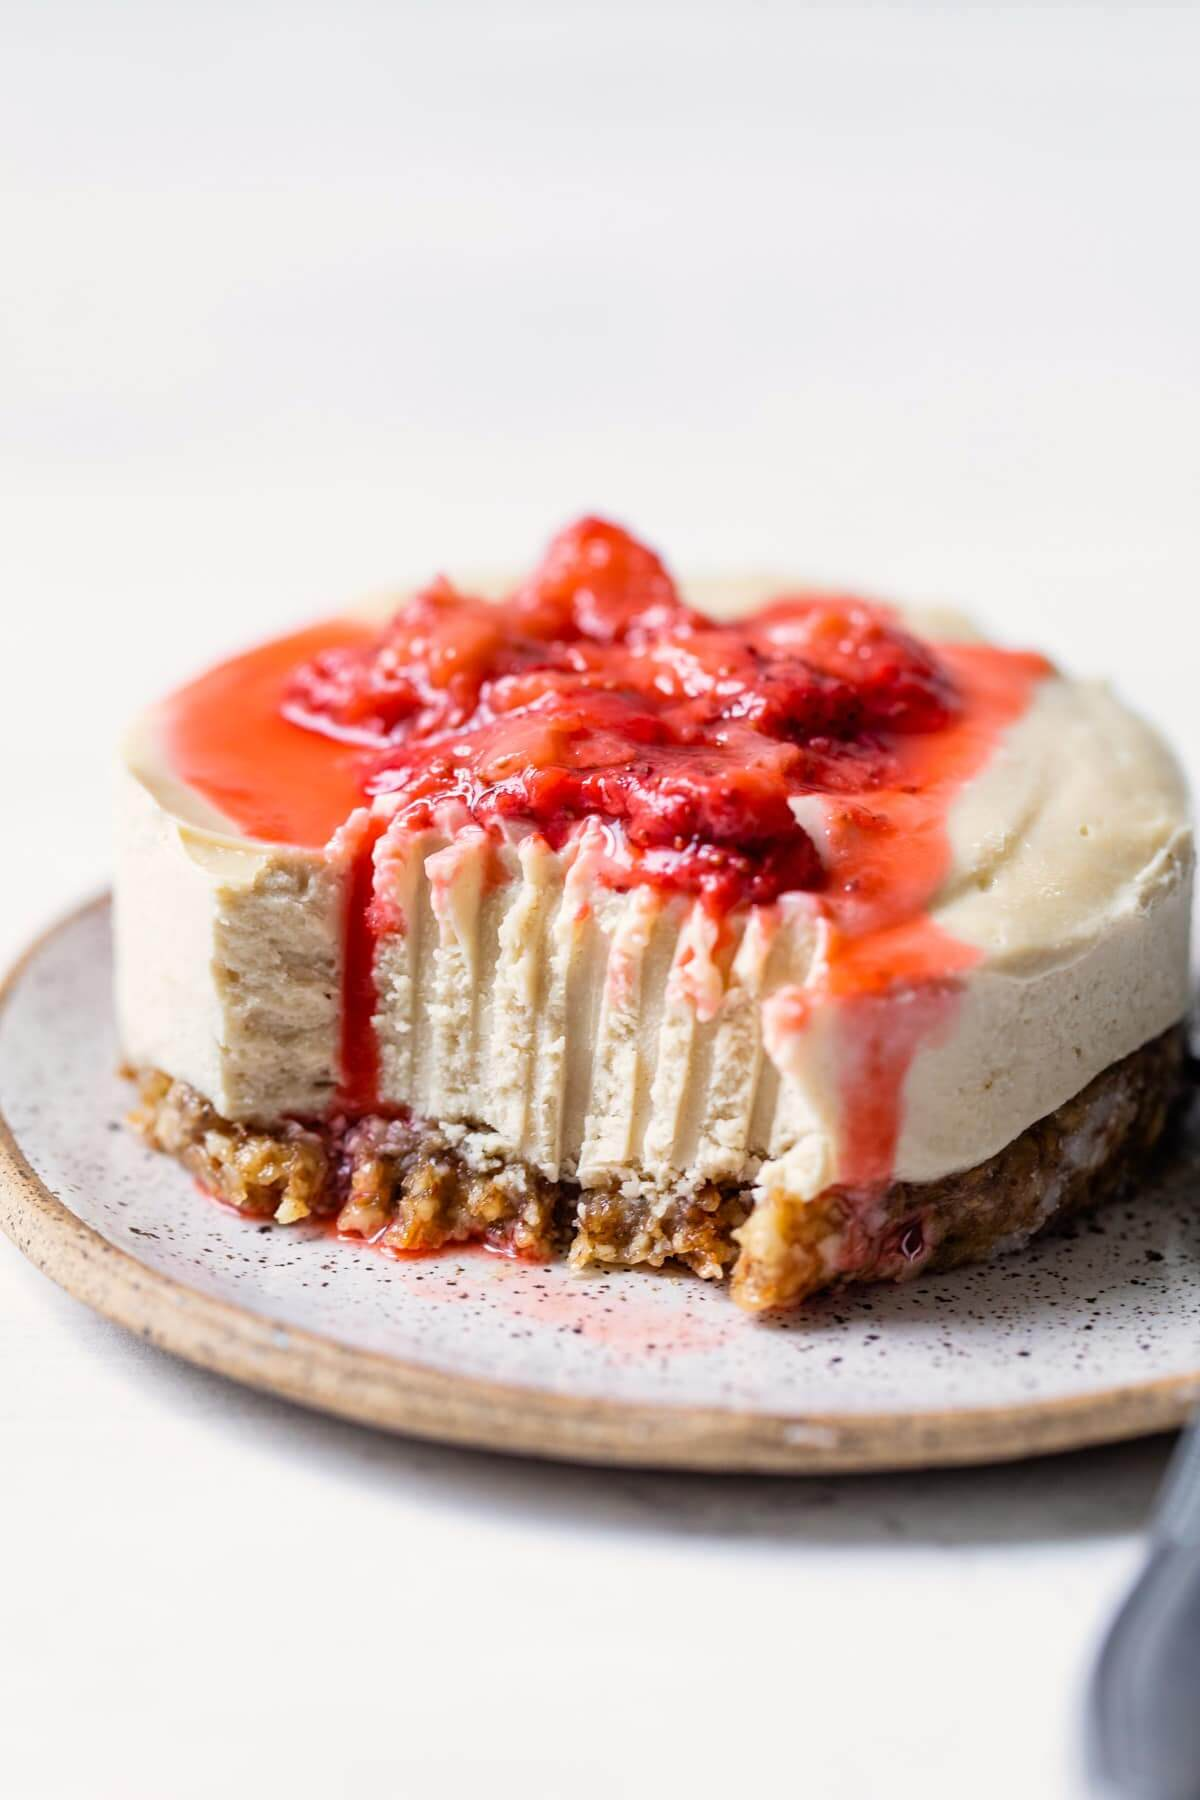 Gluten free cheesecake with strawberry topping